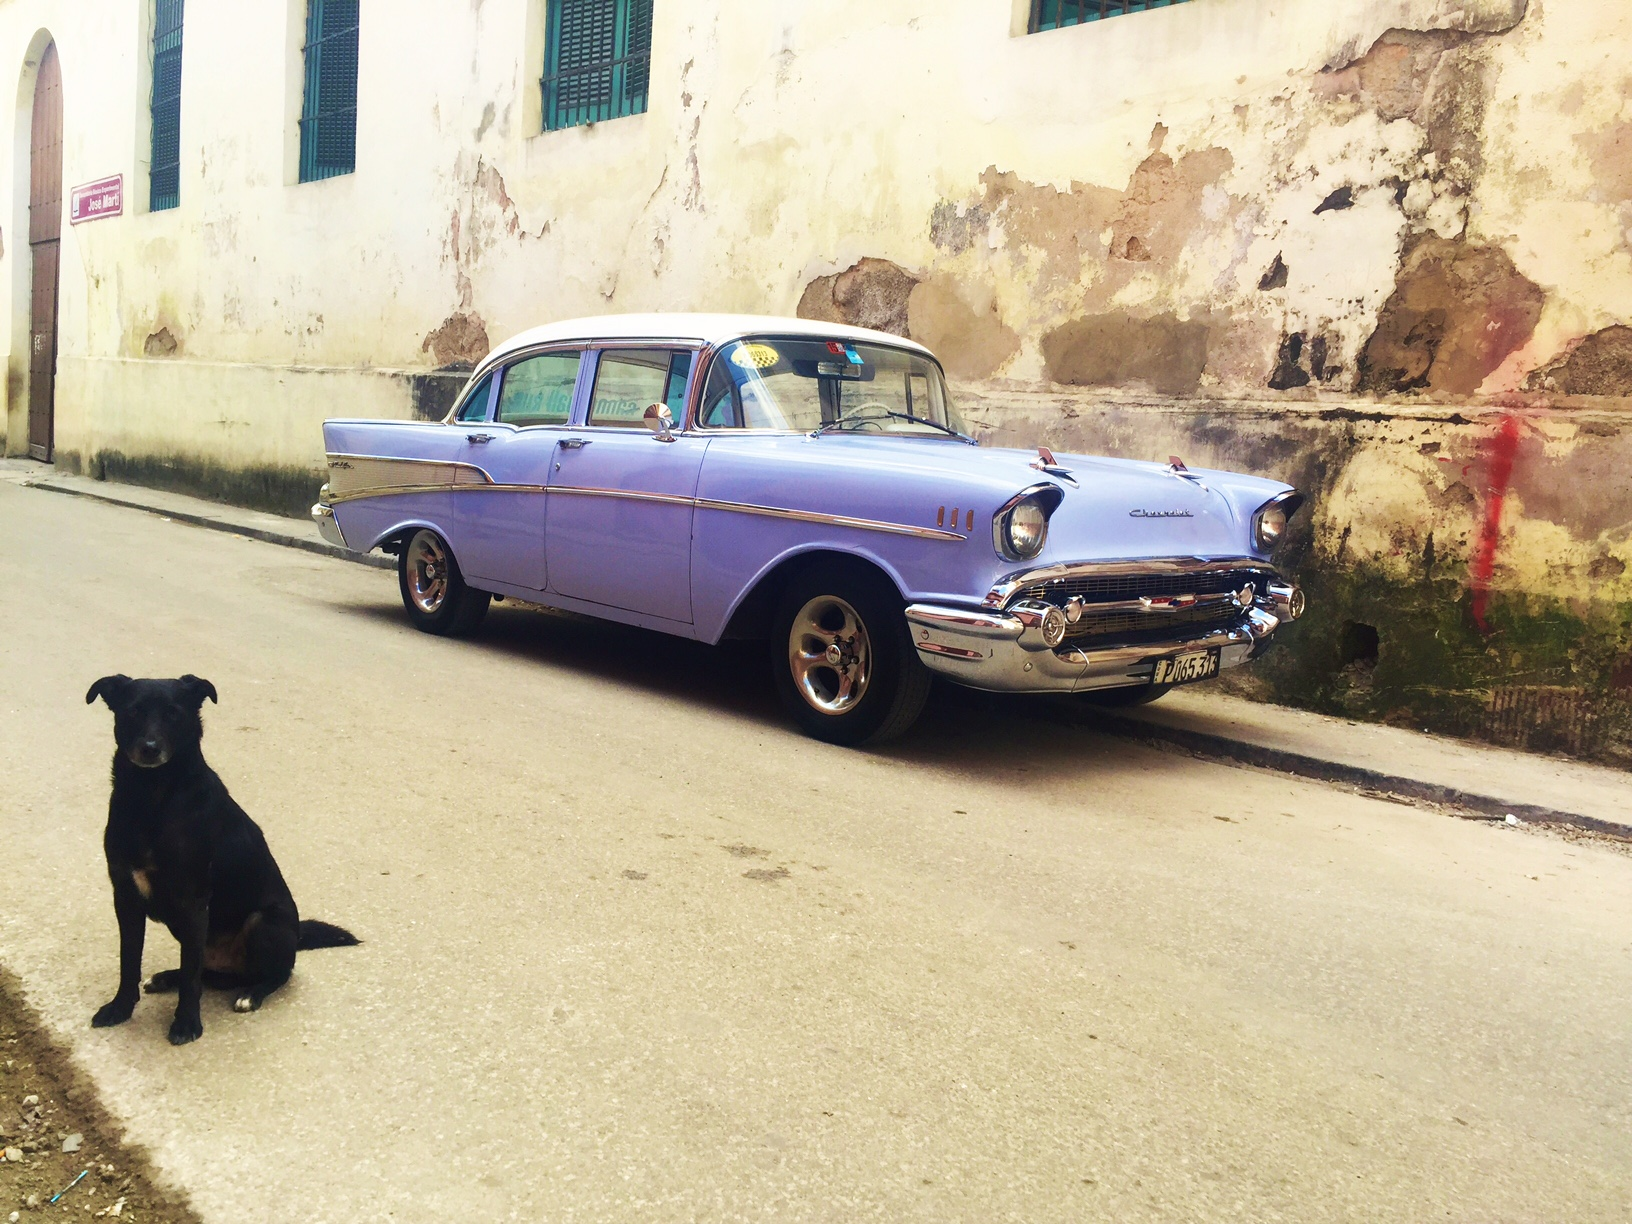 PS Cuba is mad dog-friendly. I saw lots of travelers bring their dogs to Cuba. Everyone loves 'em